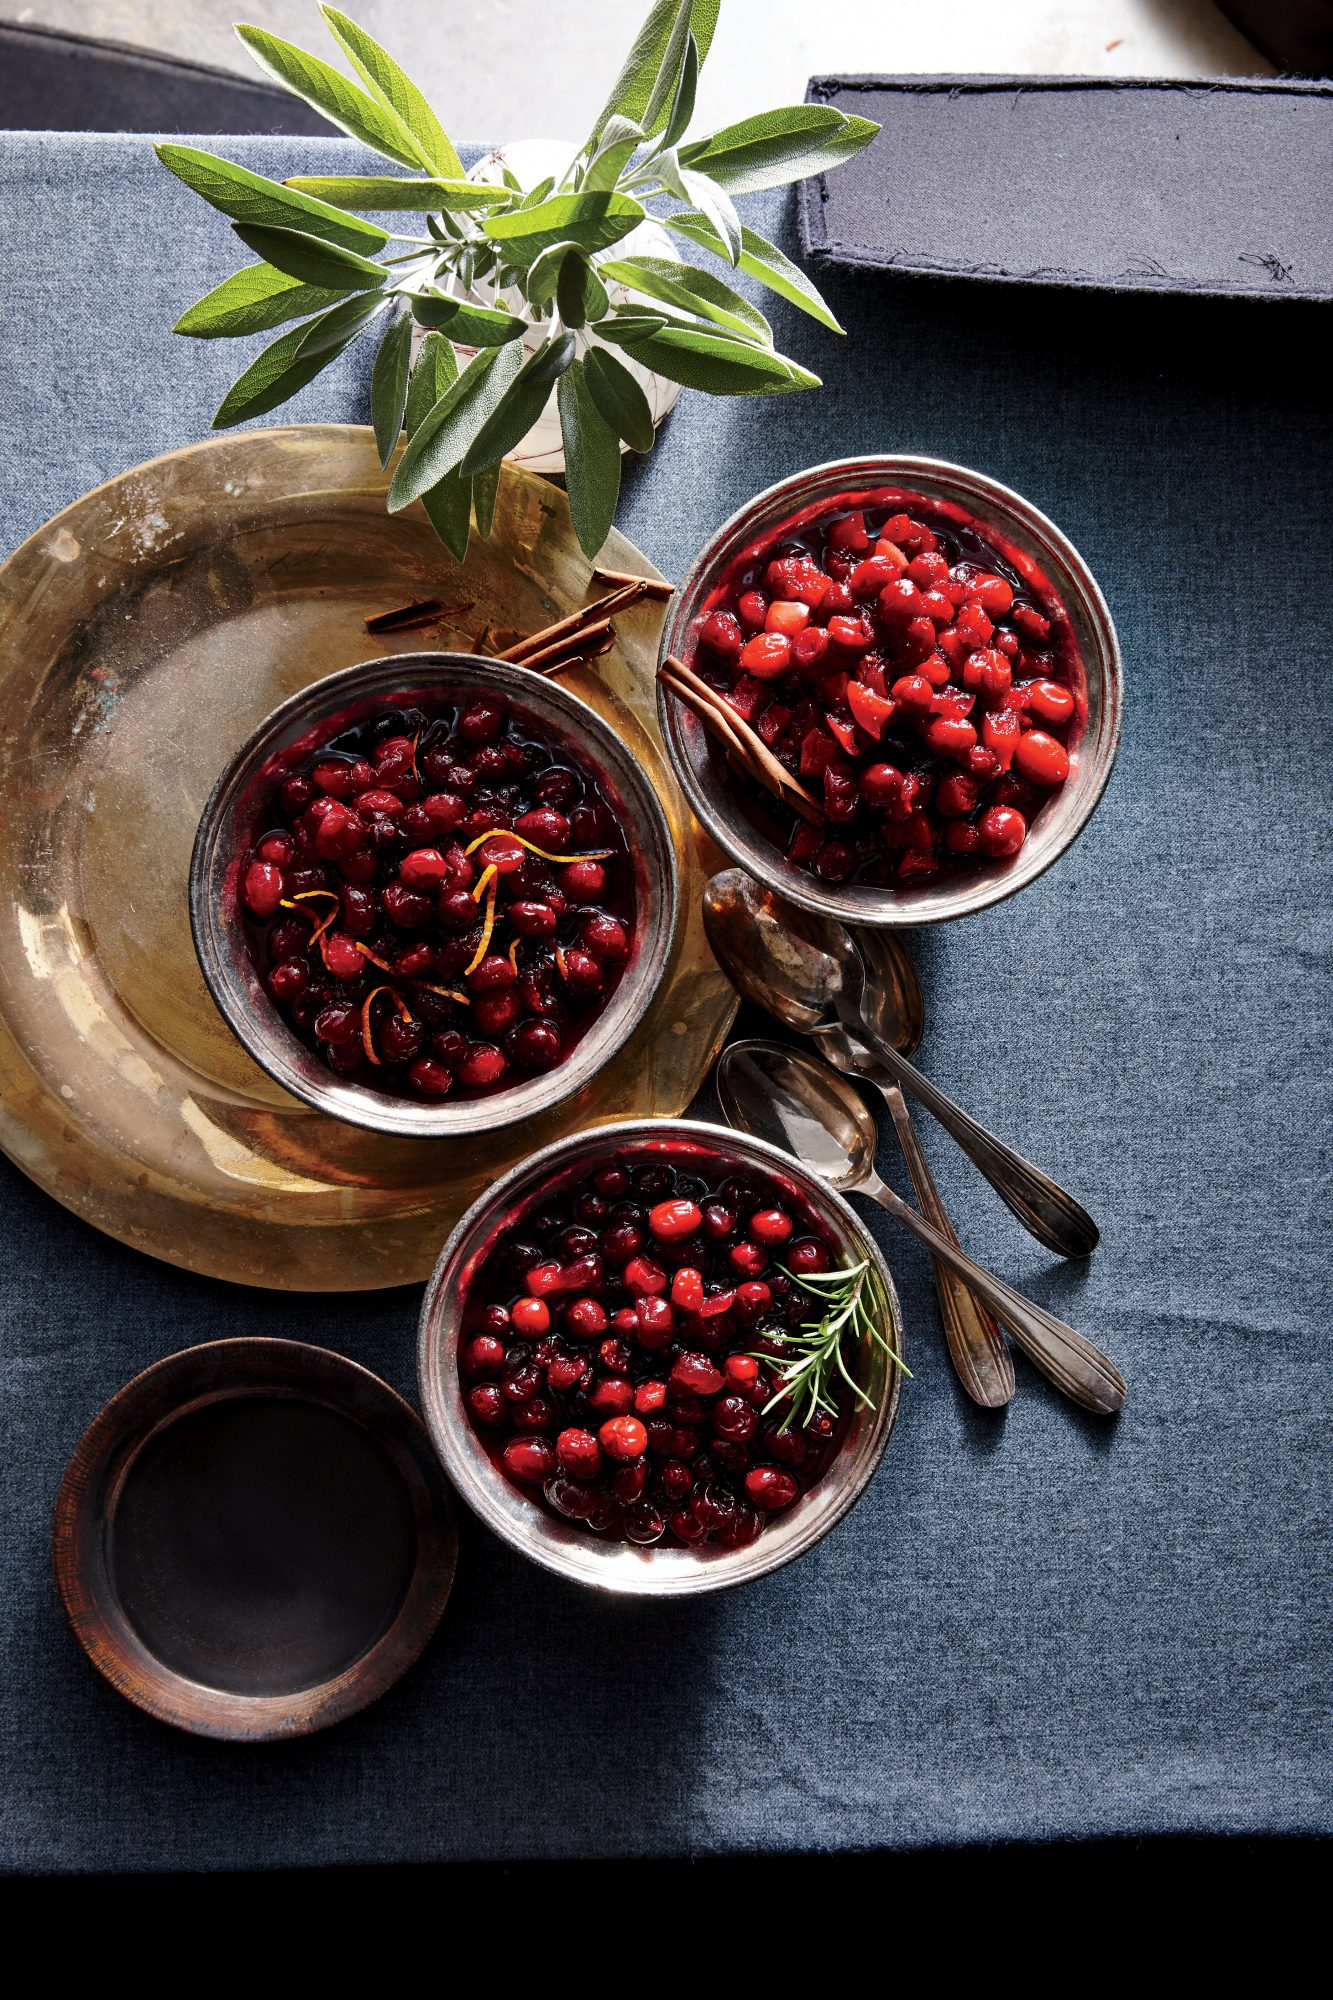 Spiced-Apple Cranberry Sauce